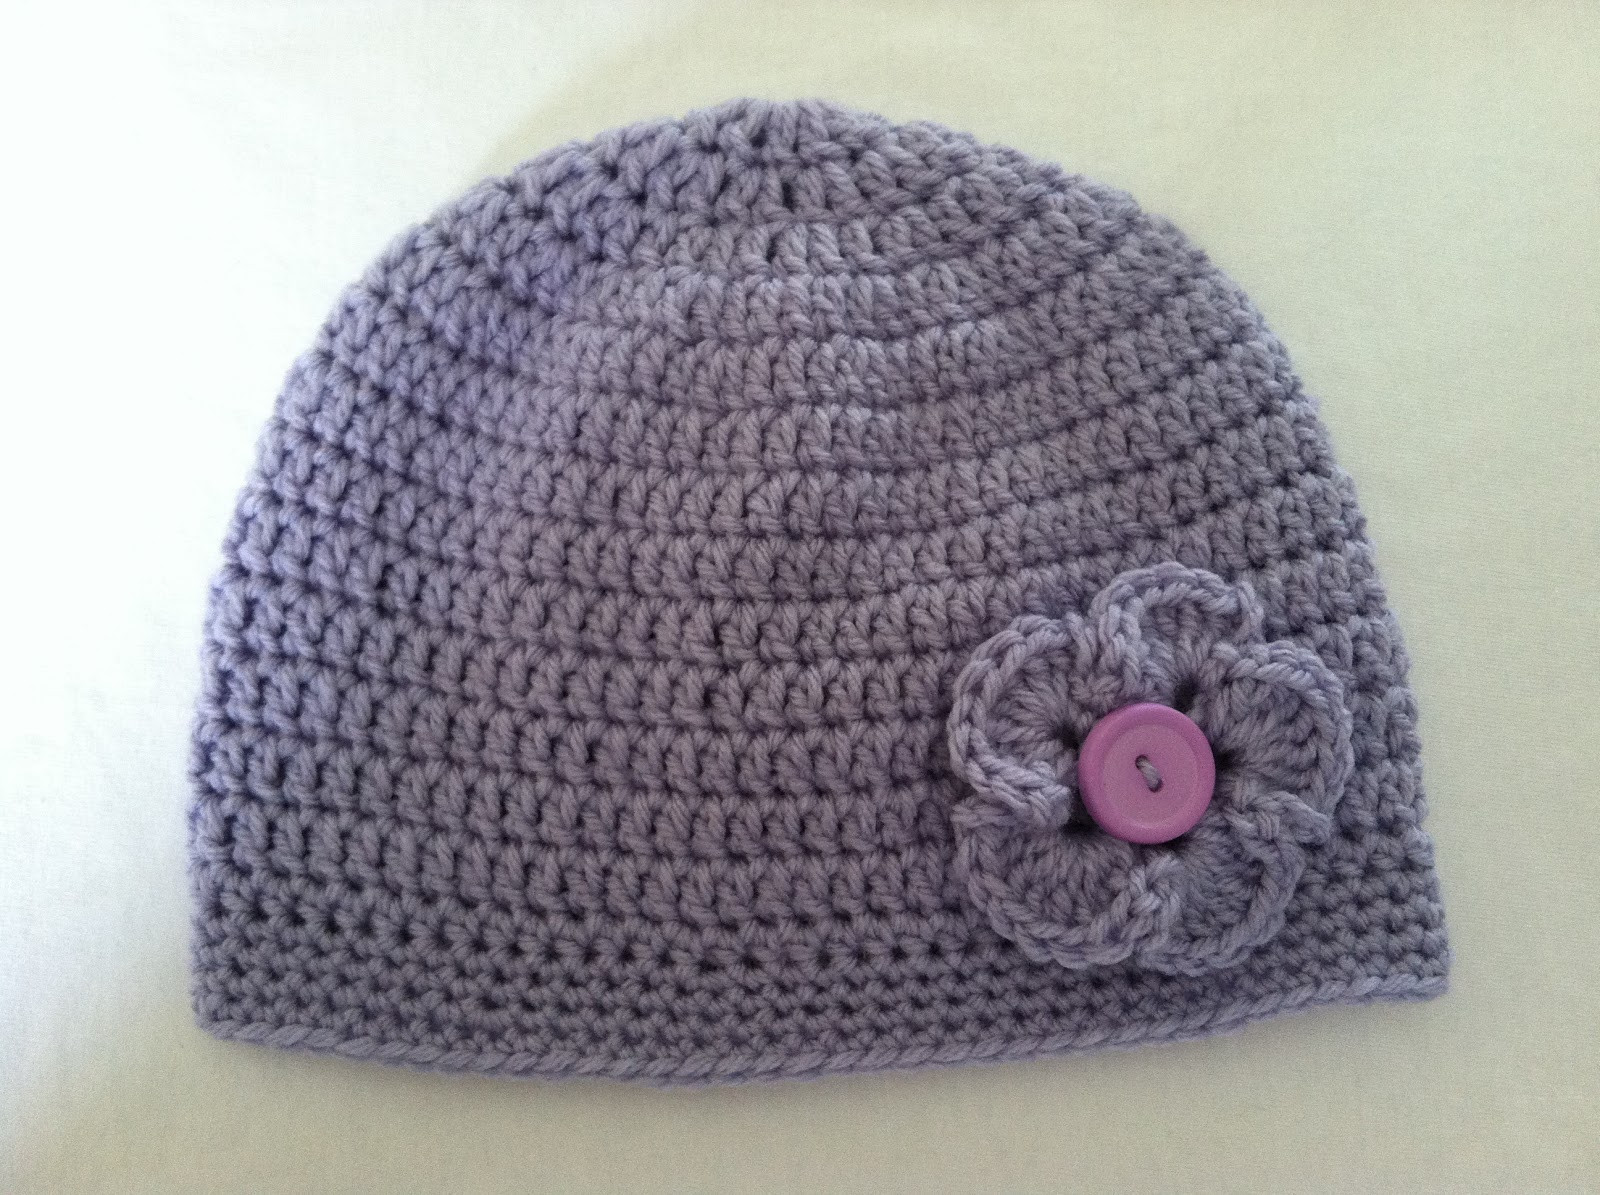 Inspirational Crochet for Cancer Chemo Hat & Flower Patterns Crochet Chemo Hats Patterns Of Marvelous 45 Ideas Crochet Chemo Hats Patterns